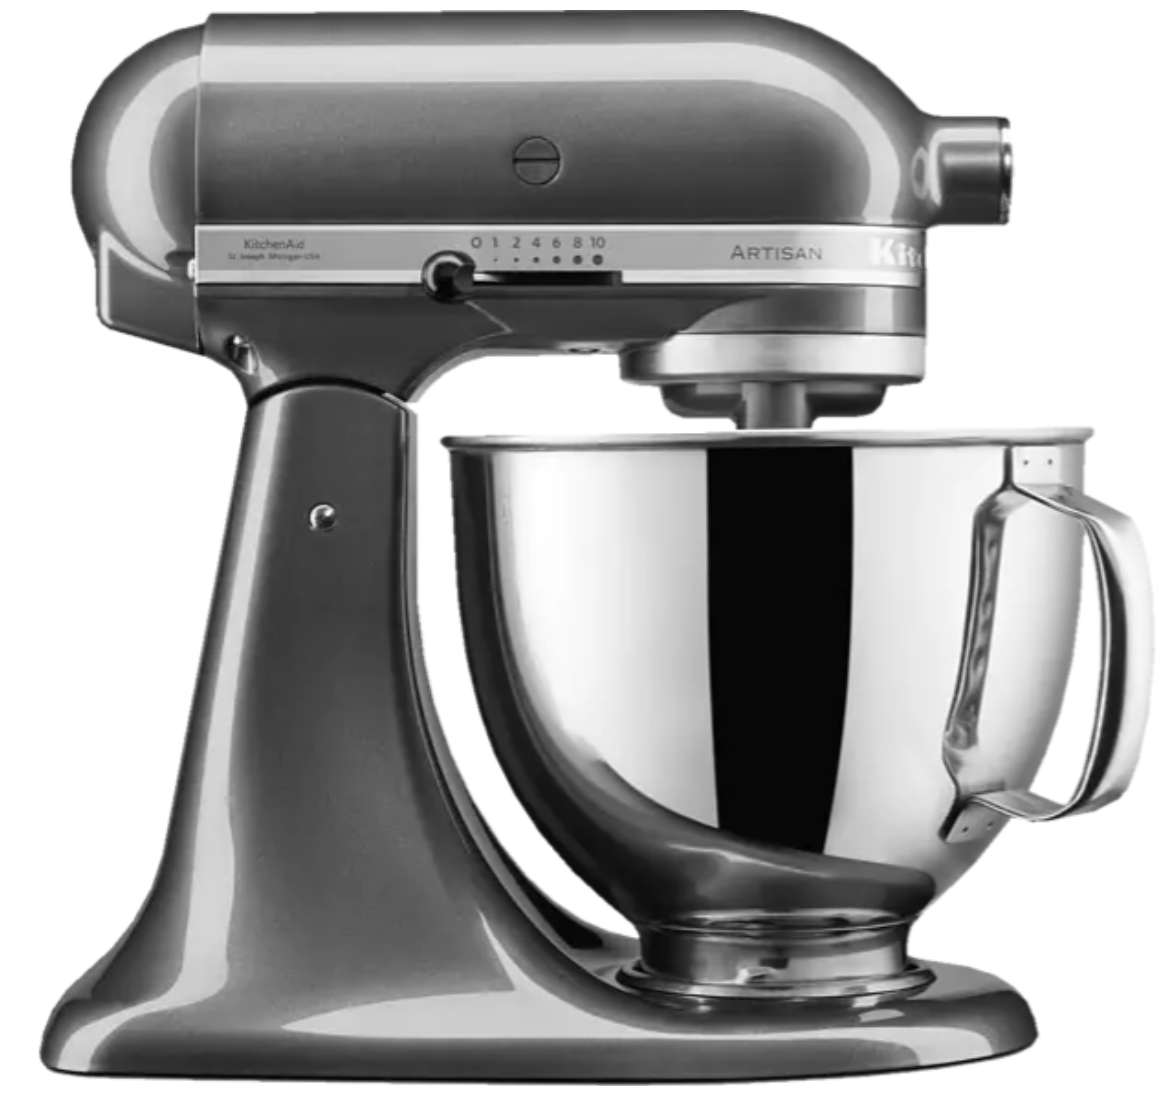 Kitchenaid Artisan 5KSM125E in Graphite für 419€ (statt 530€)